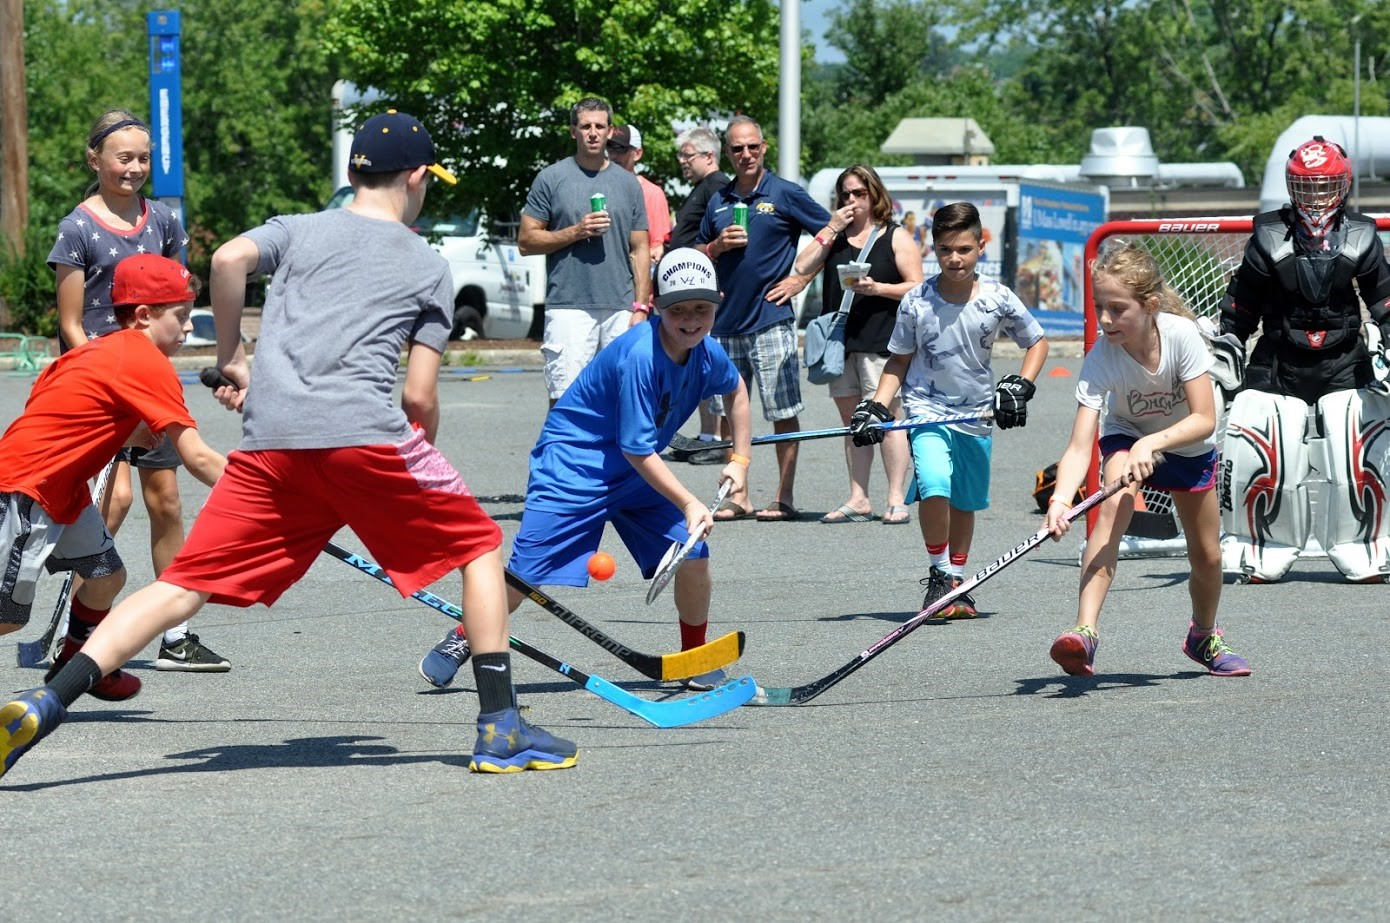 Street Hockey, Music, Burgers & Dogs – What Could be Better?